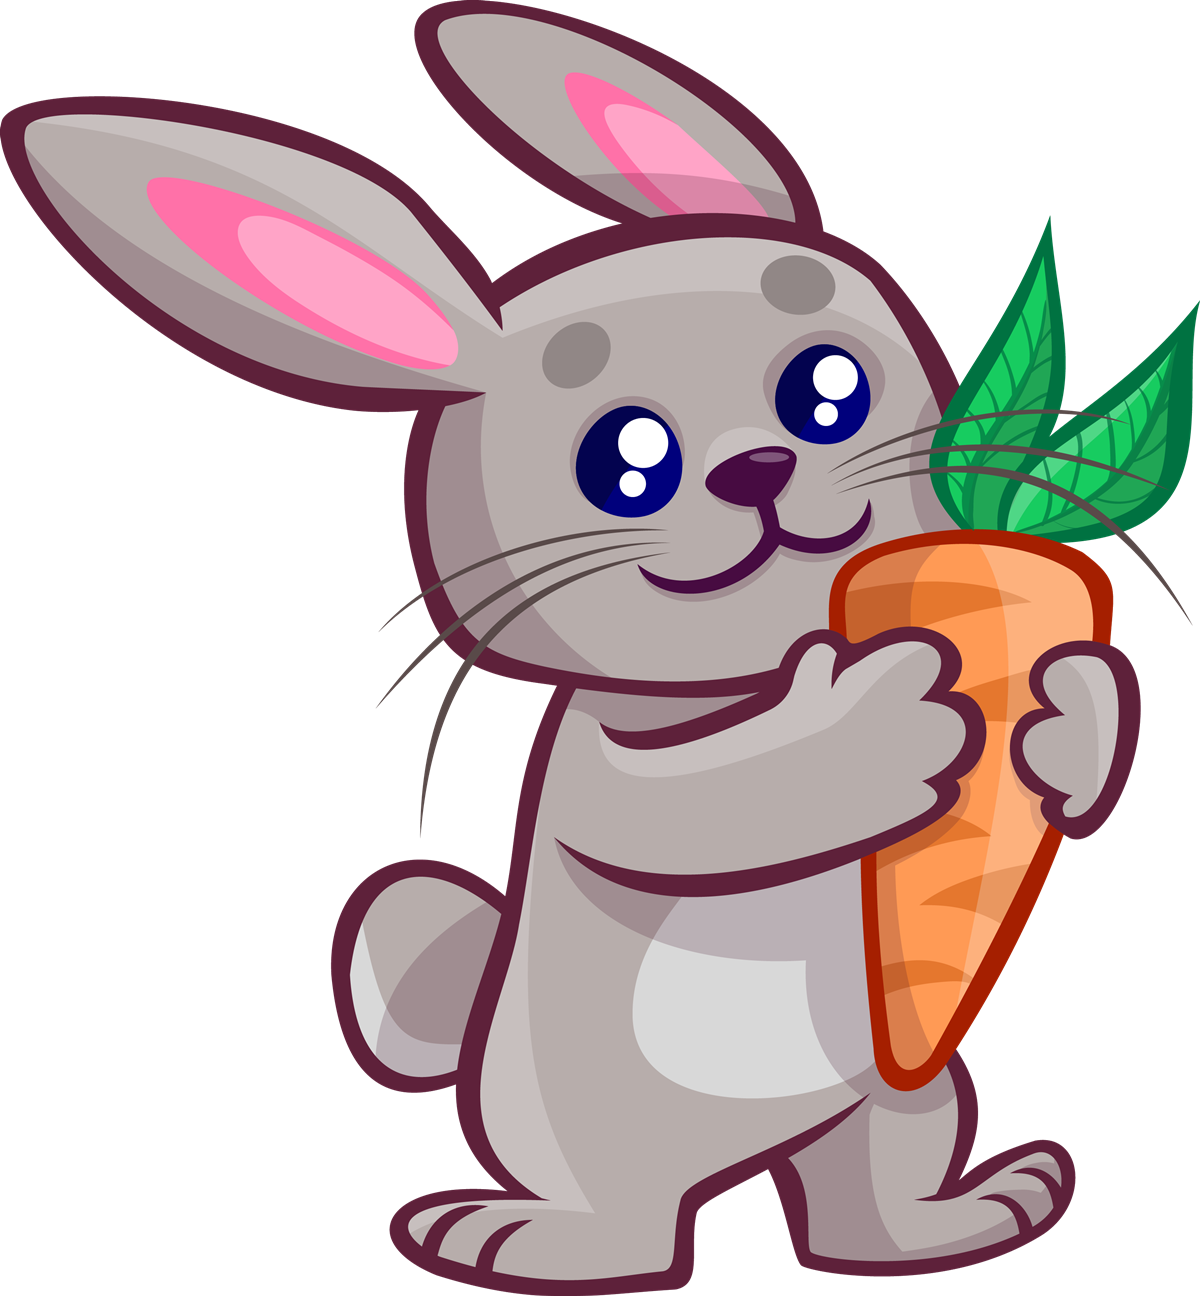 Free Cartoon Bunny Holding a Carrot Clip-Free Cartoon Bunny Holding a Carrot Clip Art-16